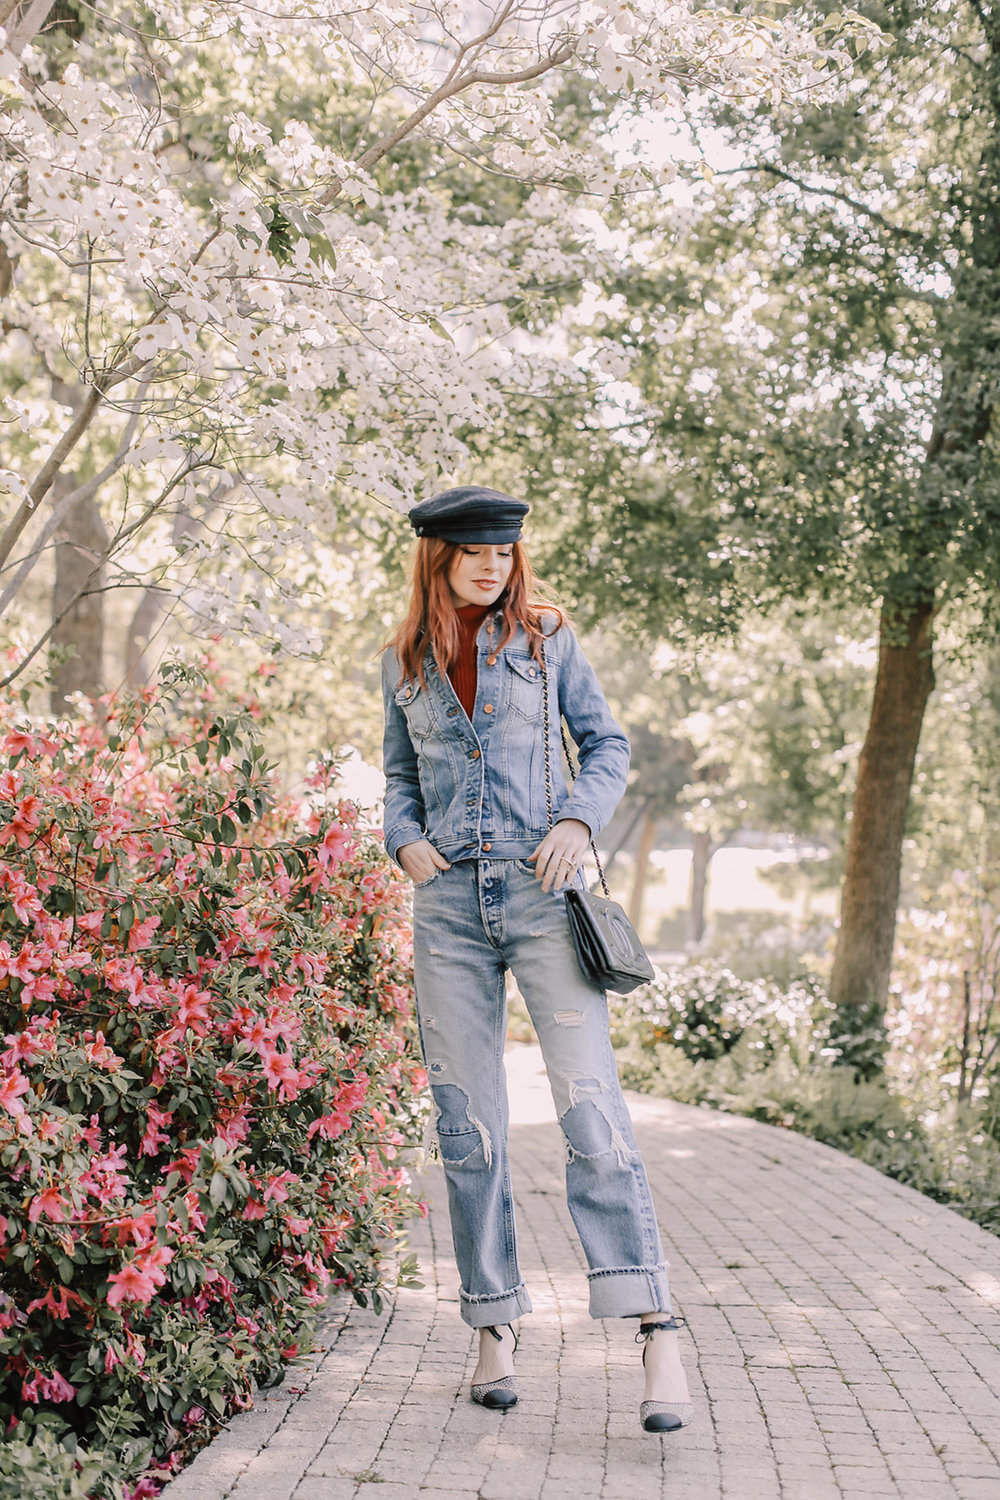 Image of Jane from Sea of Shoes in New patchworked jeans